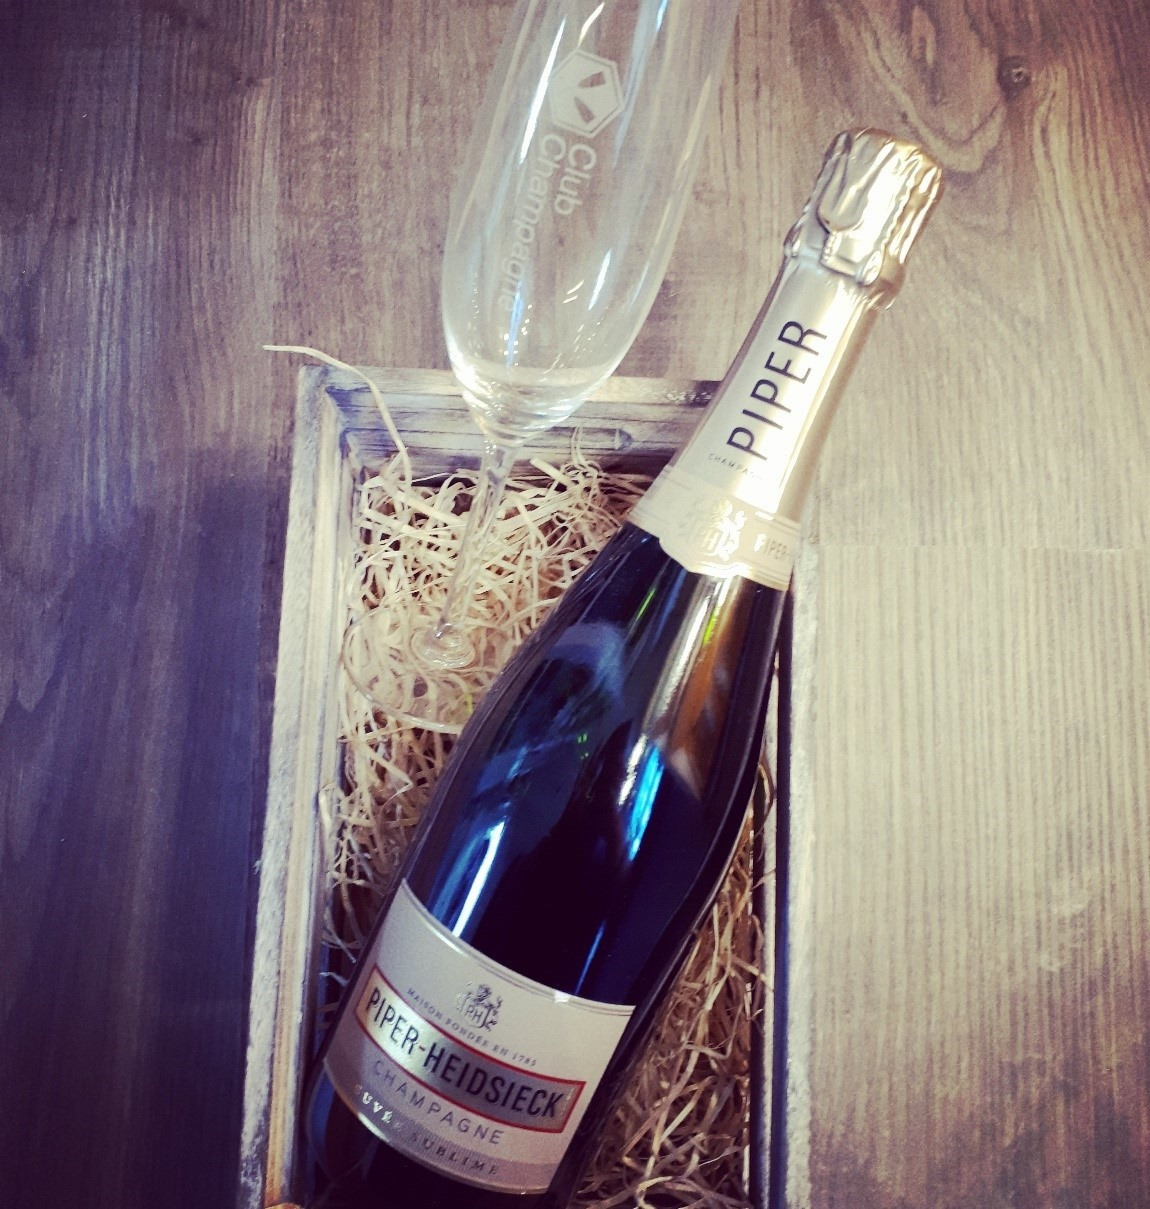 Champagnehuis Piper-Heidsieck; alles over dit champagnehuis!